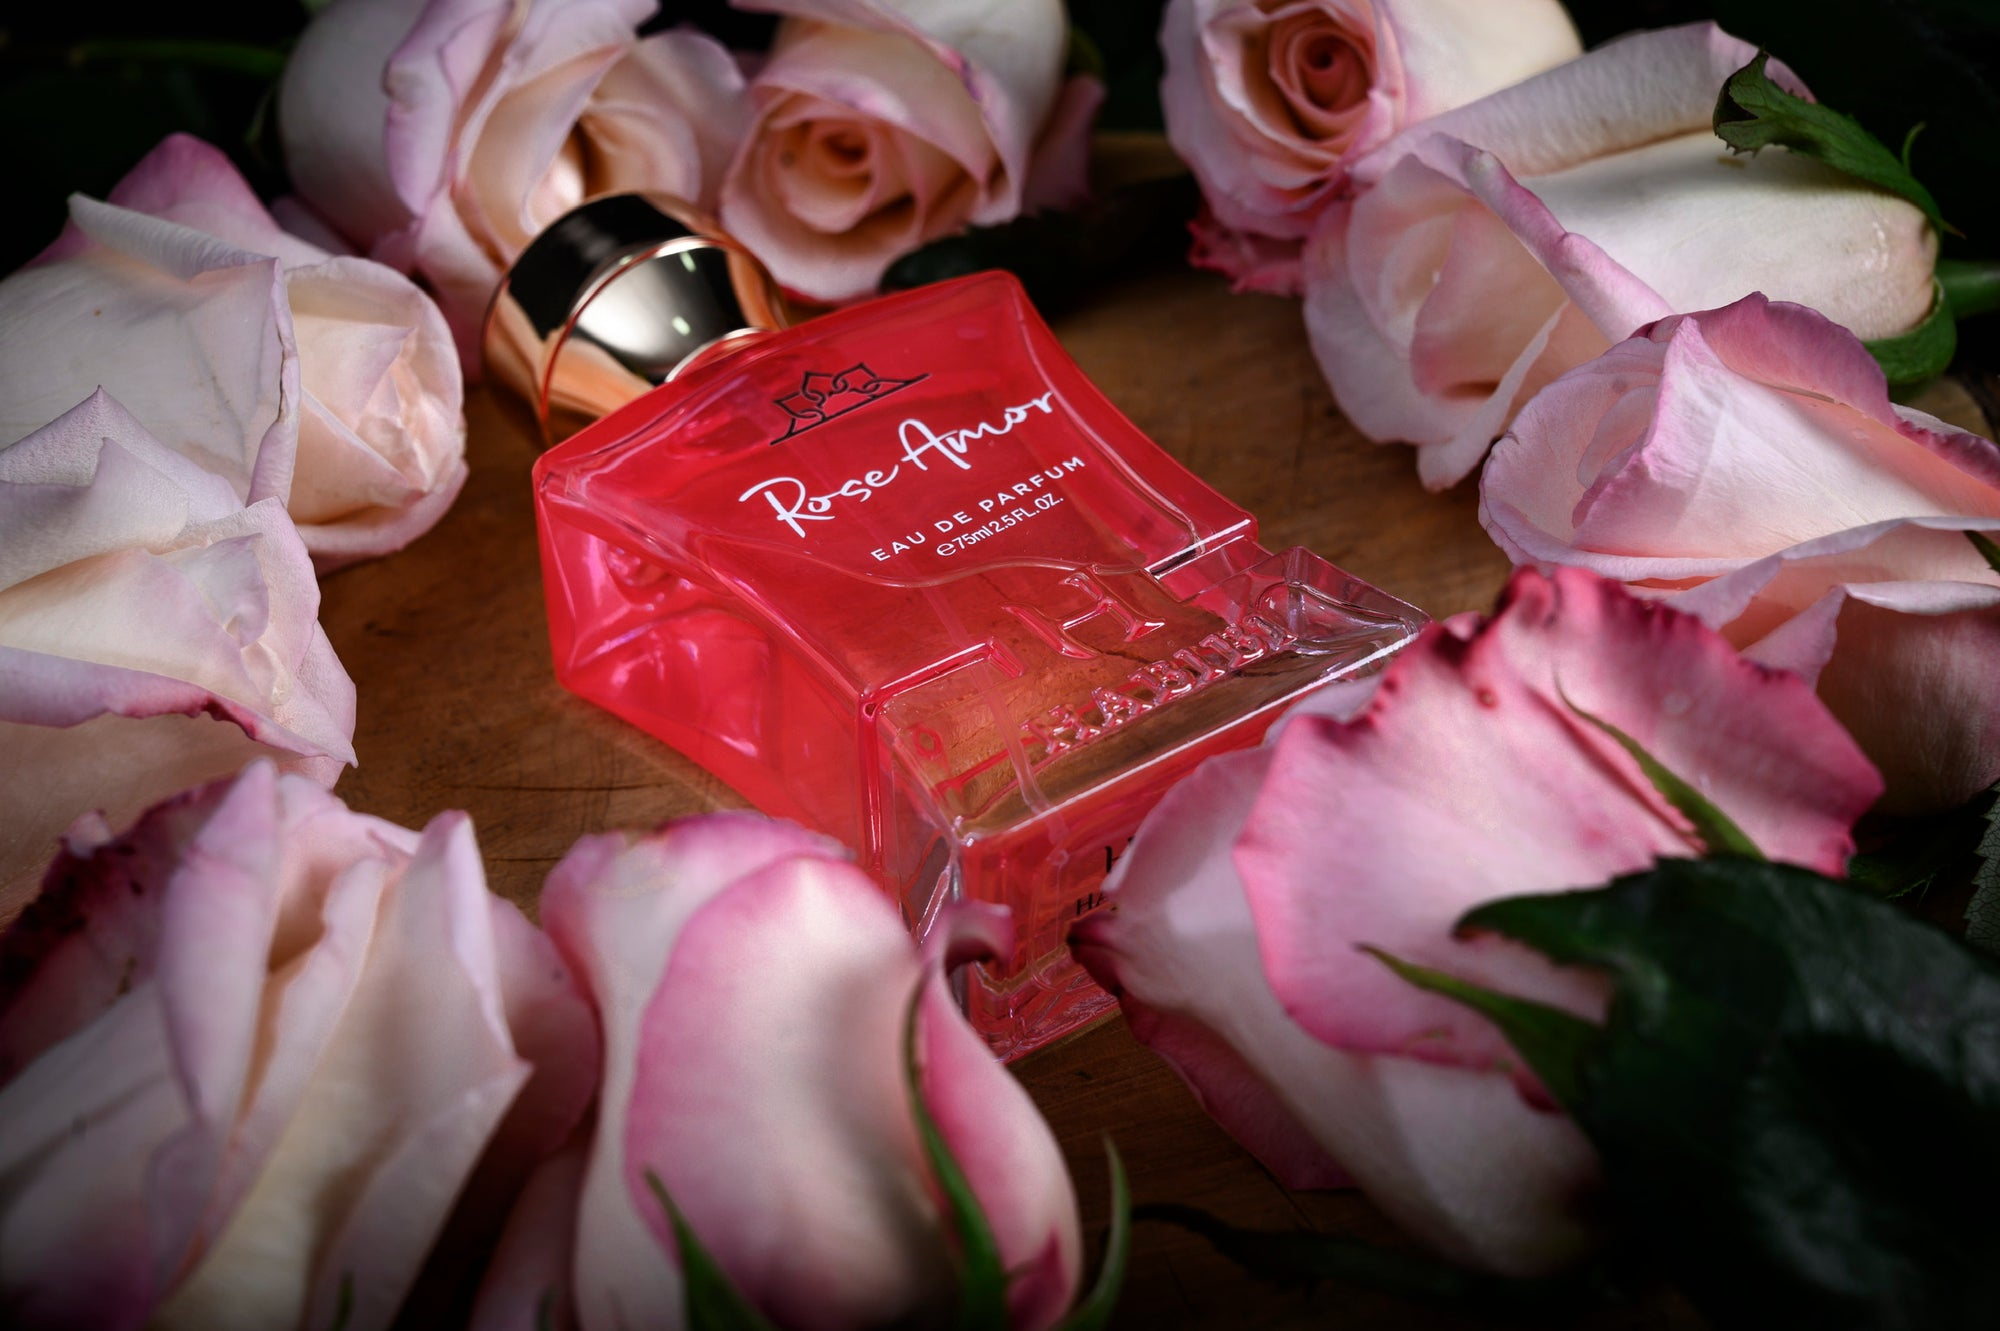 The best romantic fragrance is one that makes you feel confident and which your partner enjoys as well.